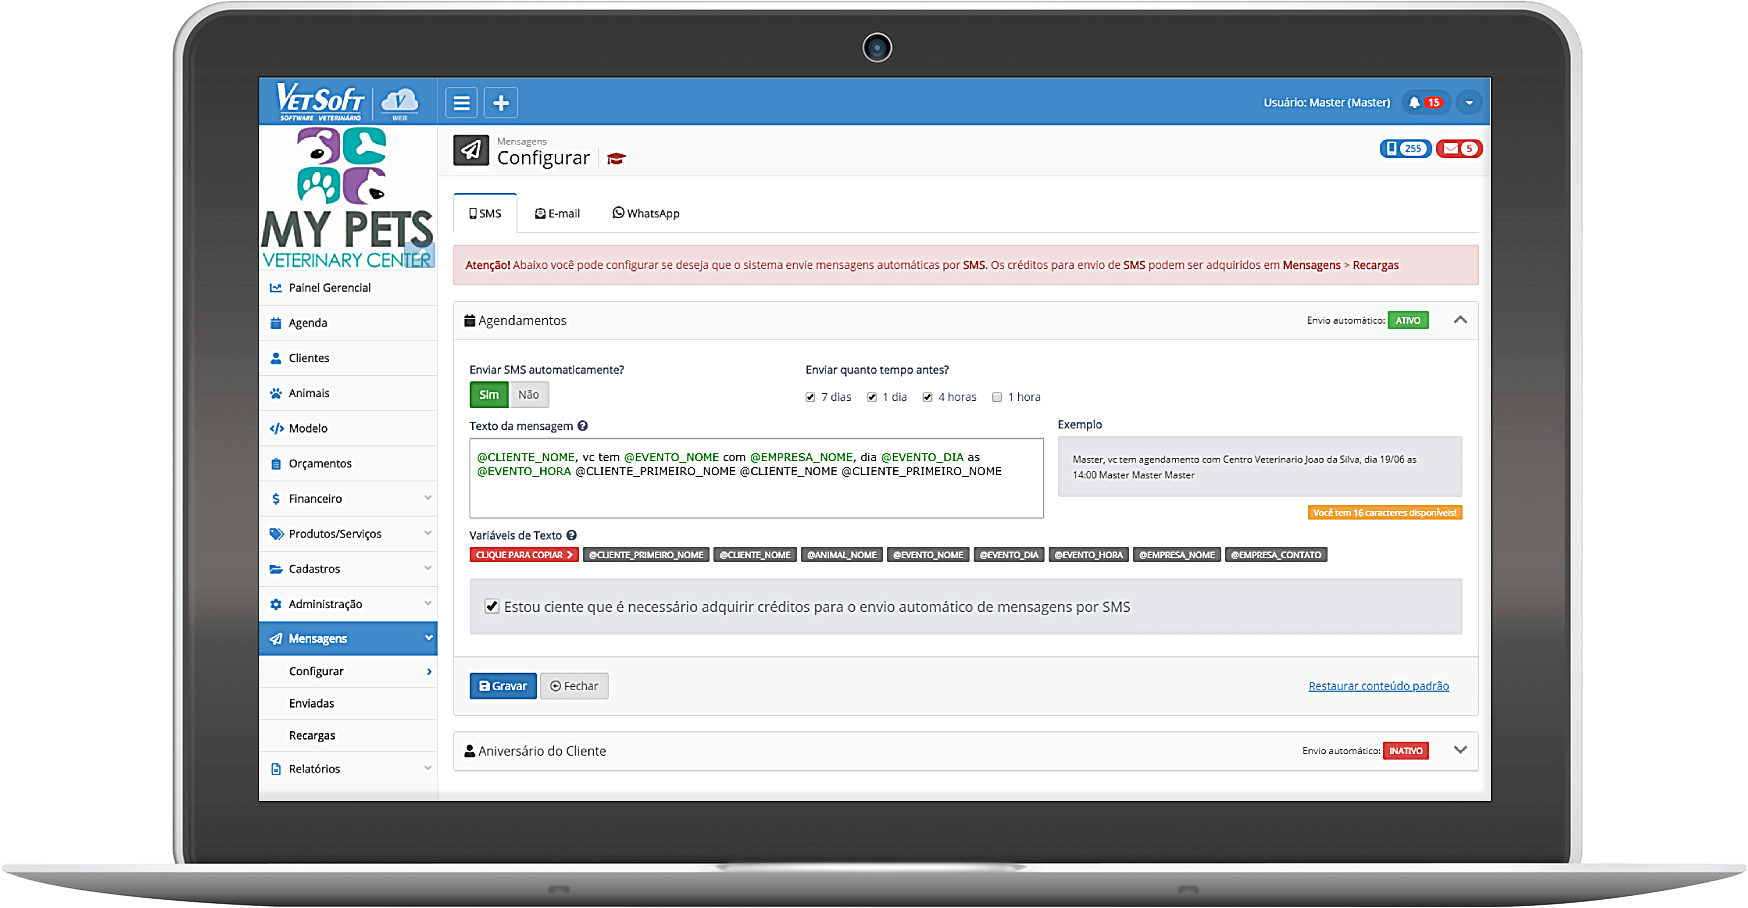 SMS/Email - VetSoft Web